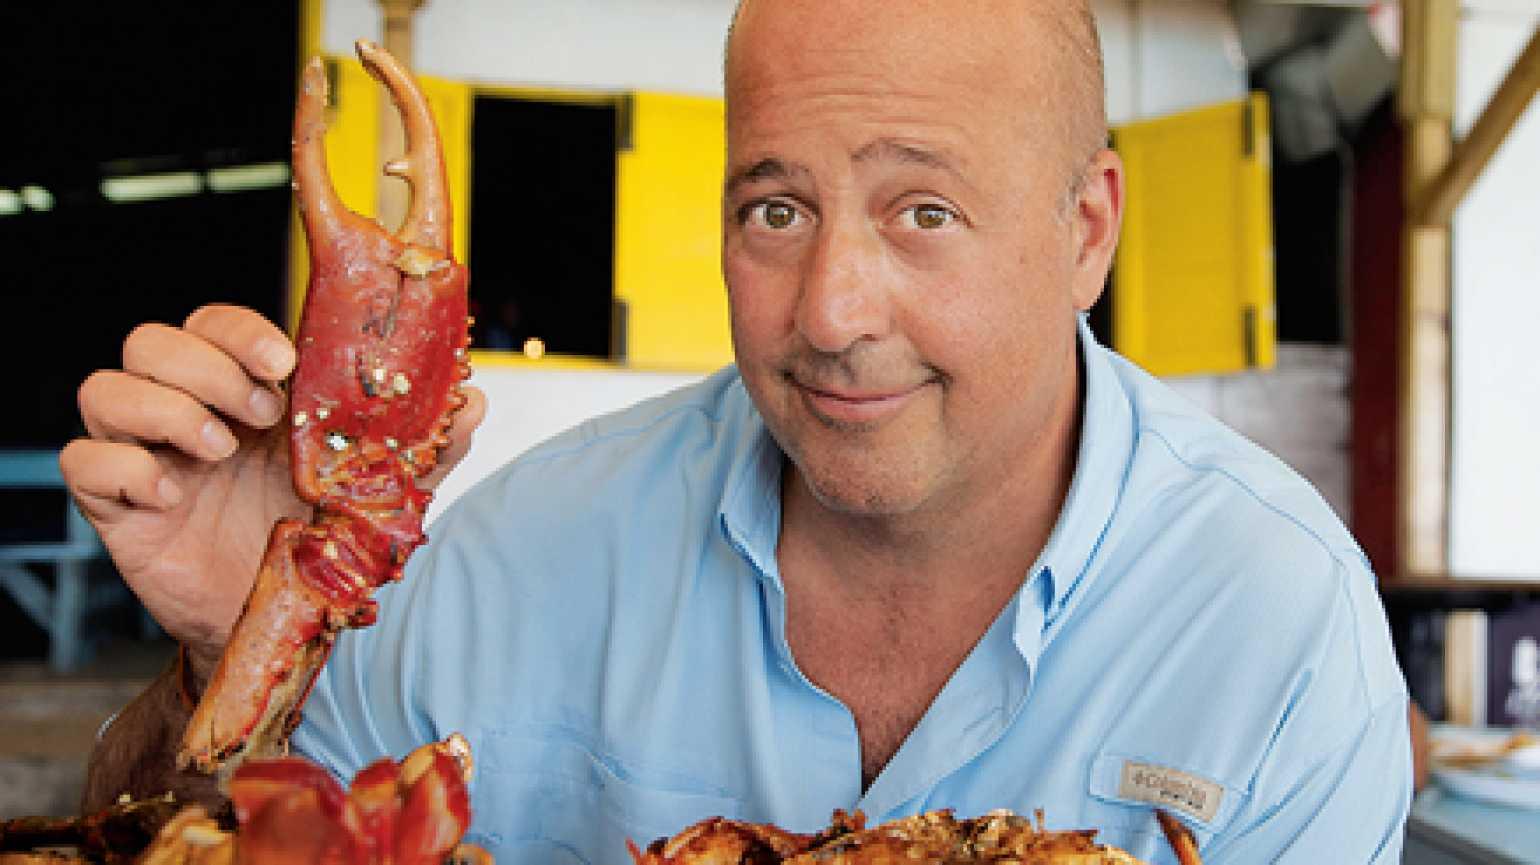 Andrew Zimmern on the set of Bizarre Foods